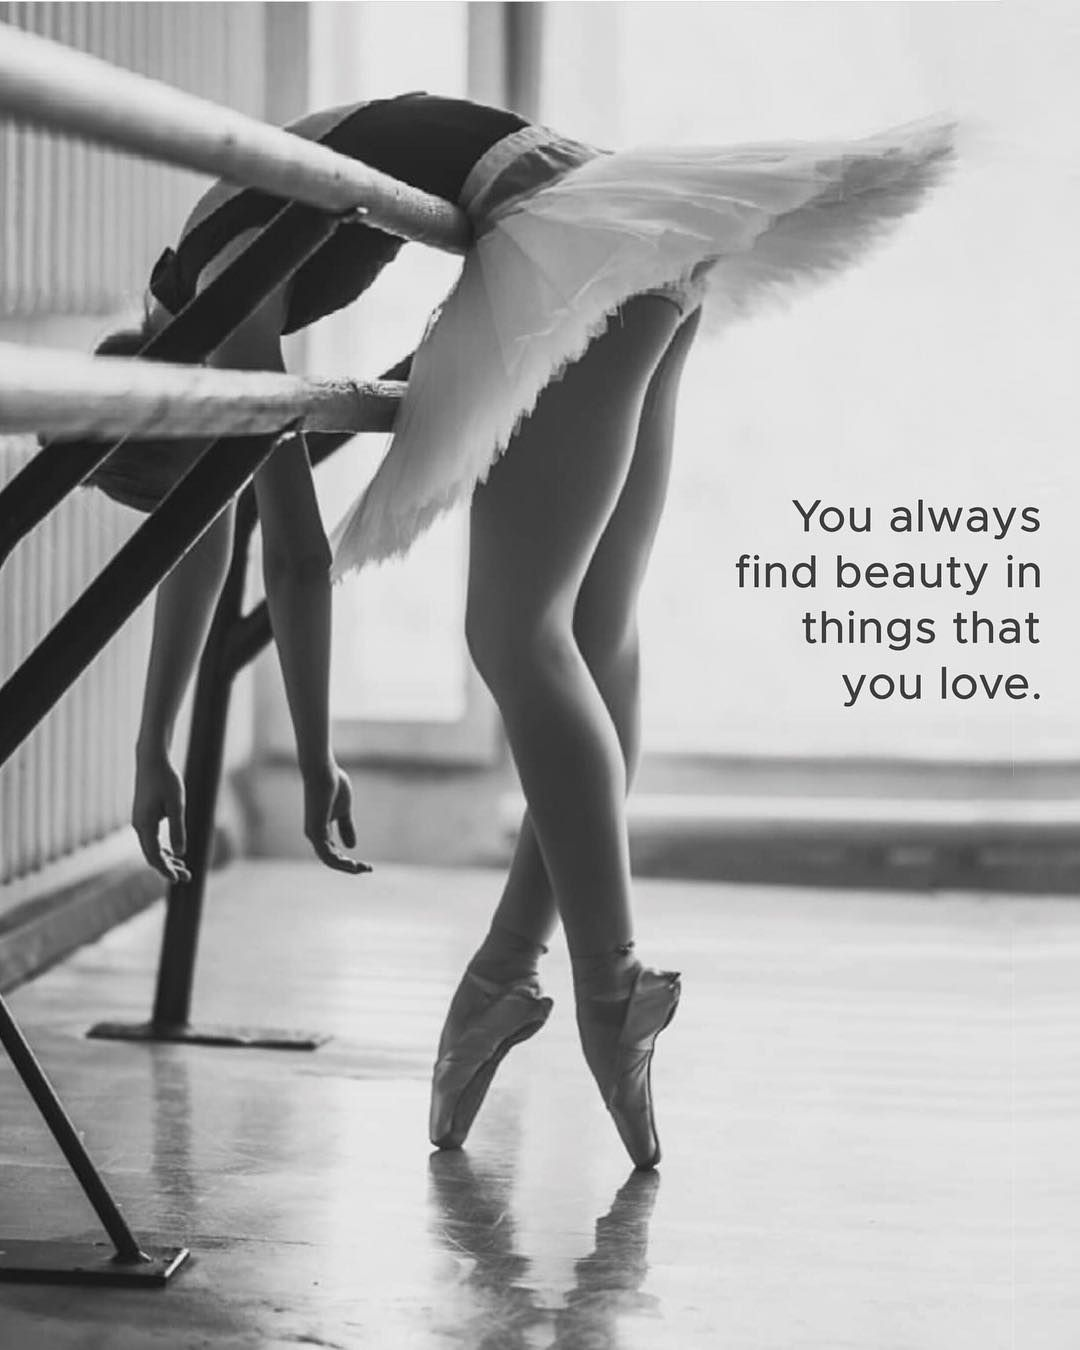 Best Dance Quotes On Instagram The Most Beautiful Thing About